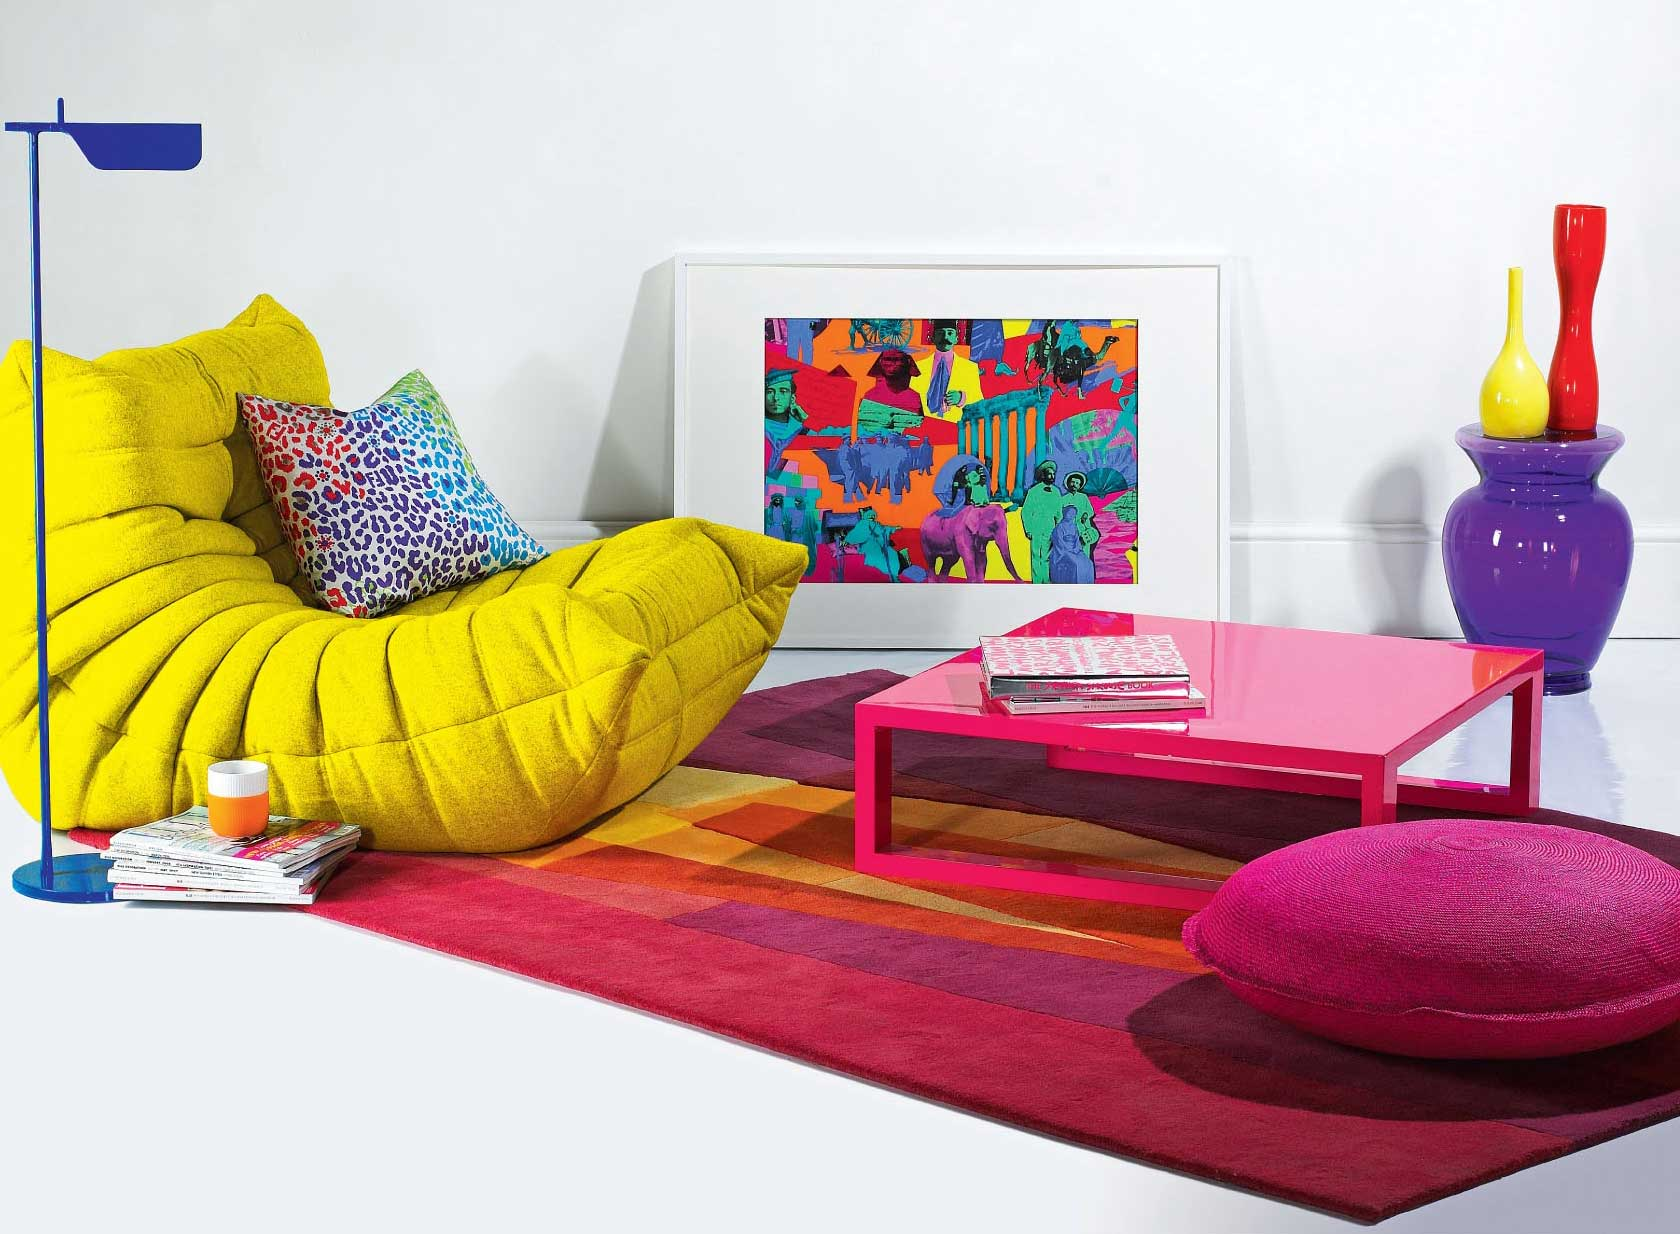 Yellow Togo Sofa by Ligne Roset with Kaleidoscope Red Rug by Sonya Winner